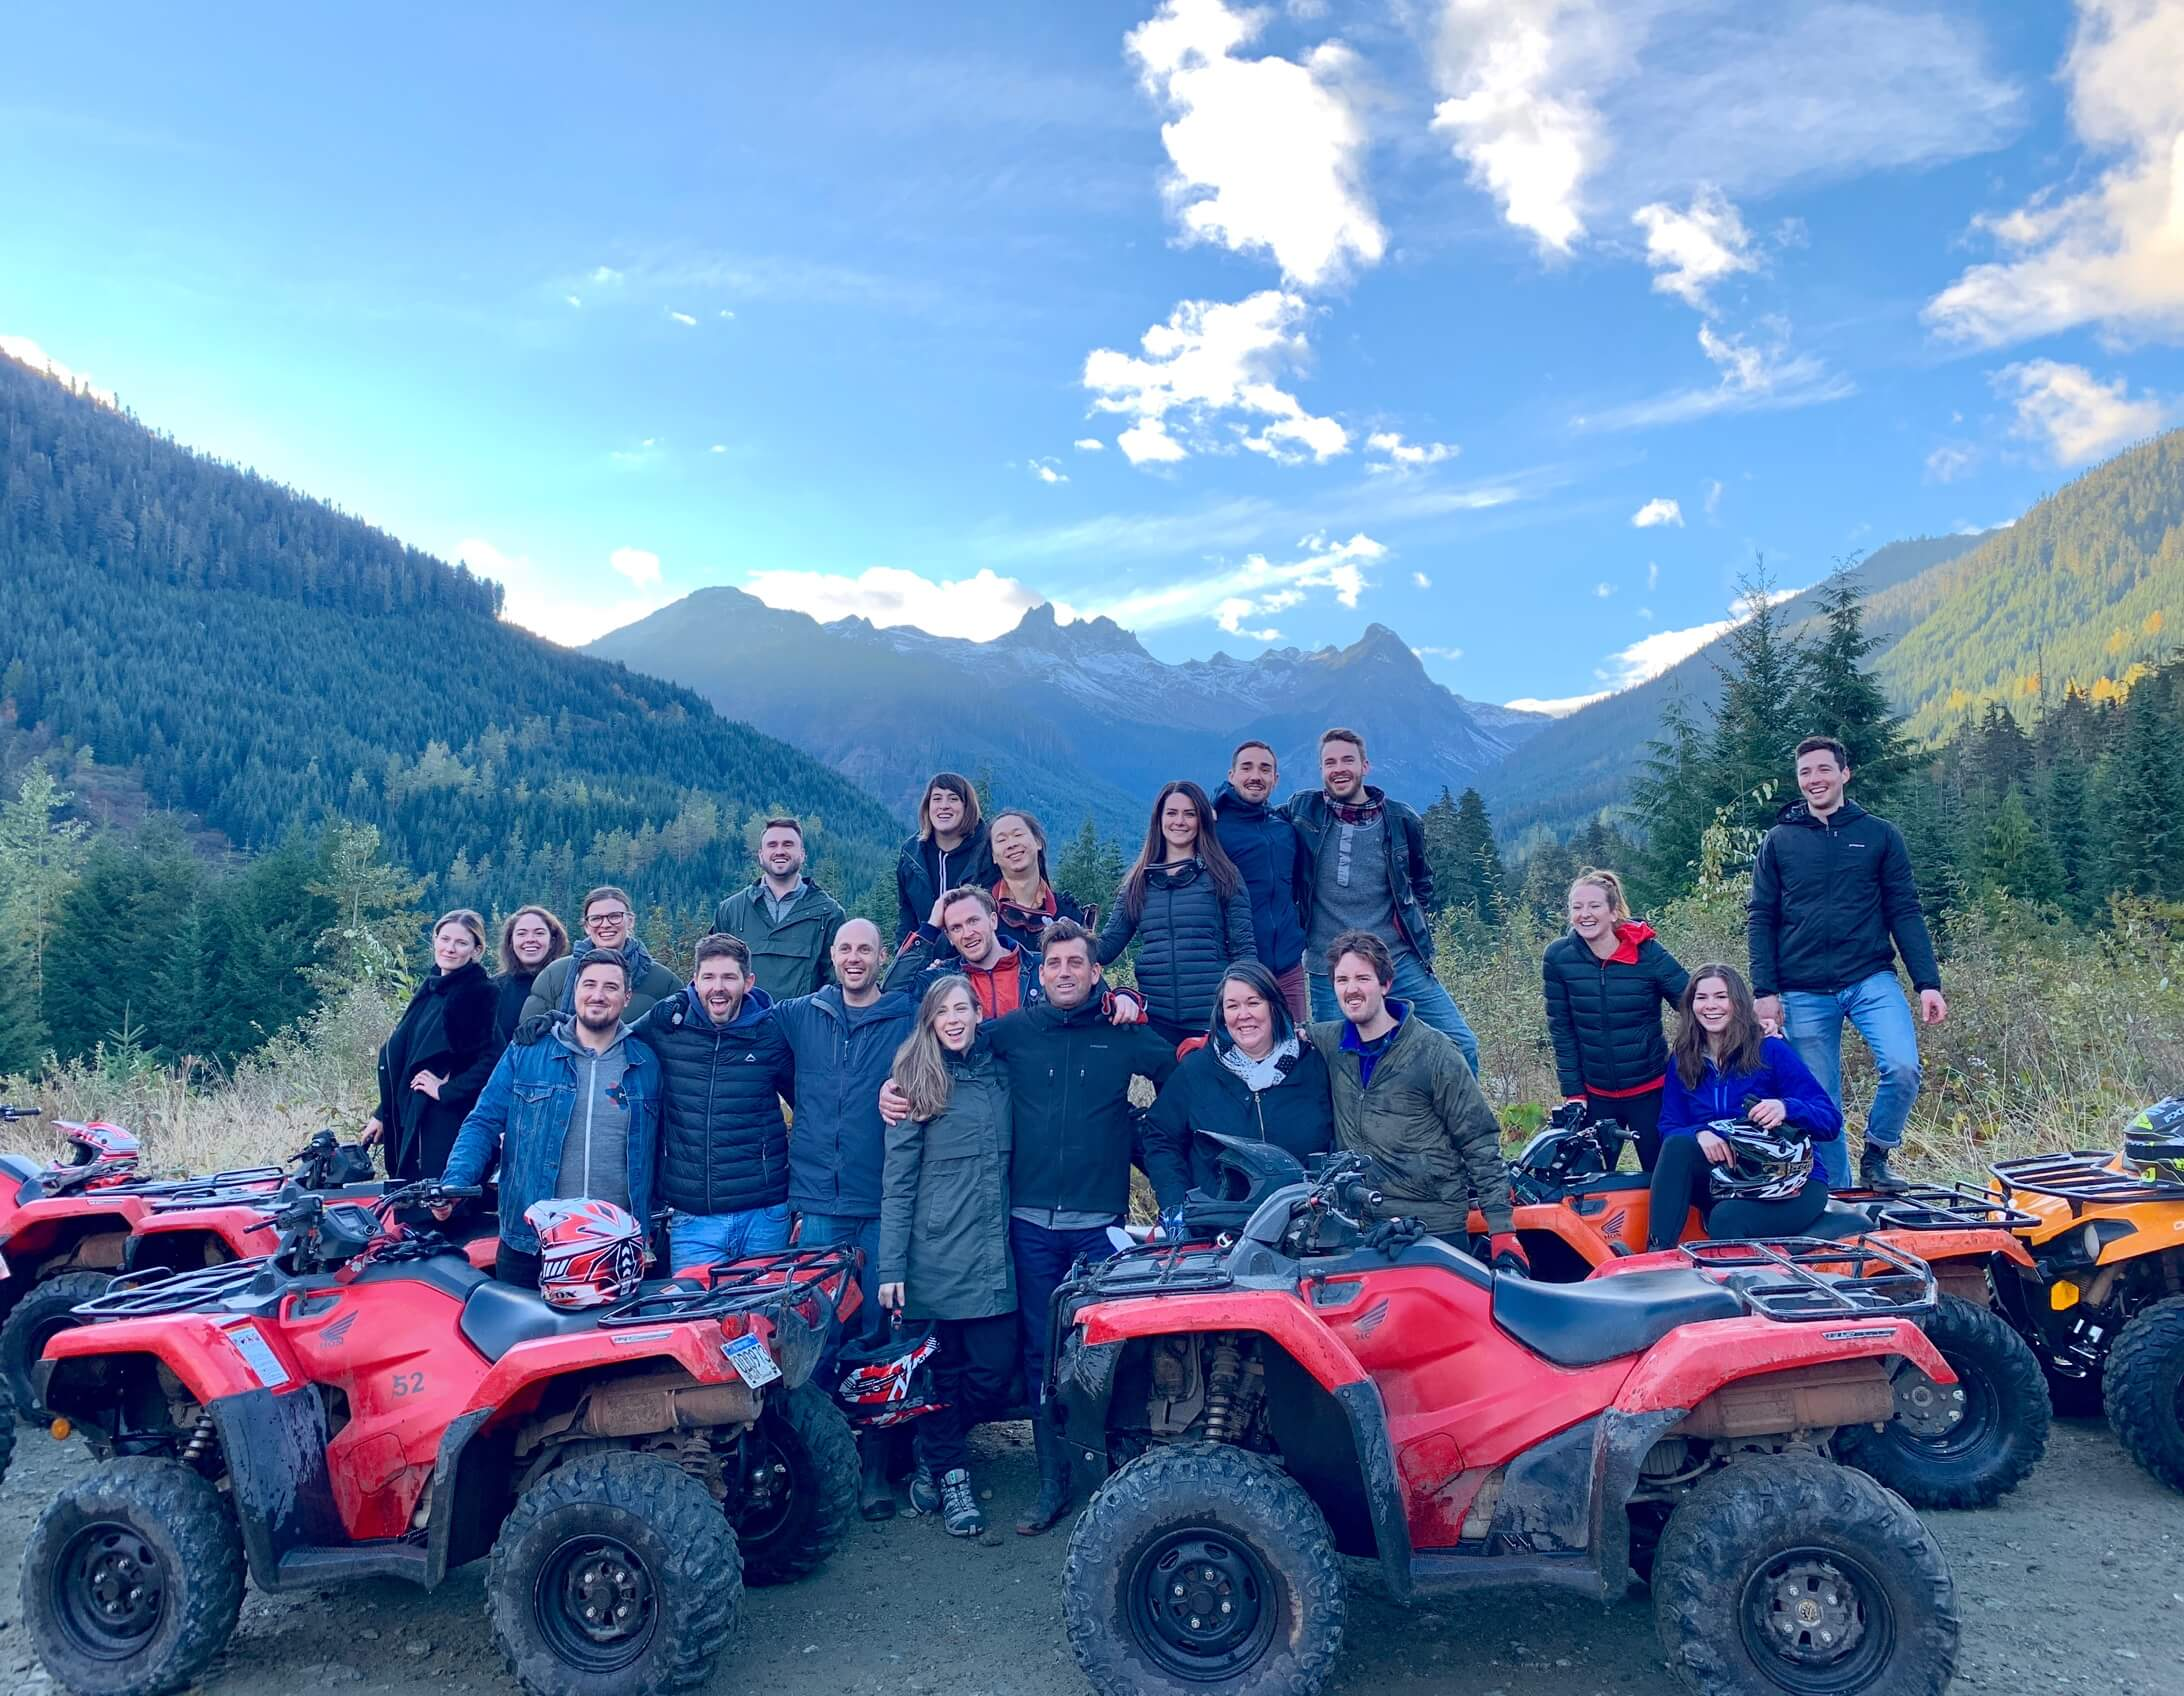 MetaLab goes ATVing in Whistler for Remote Summit 18